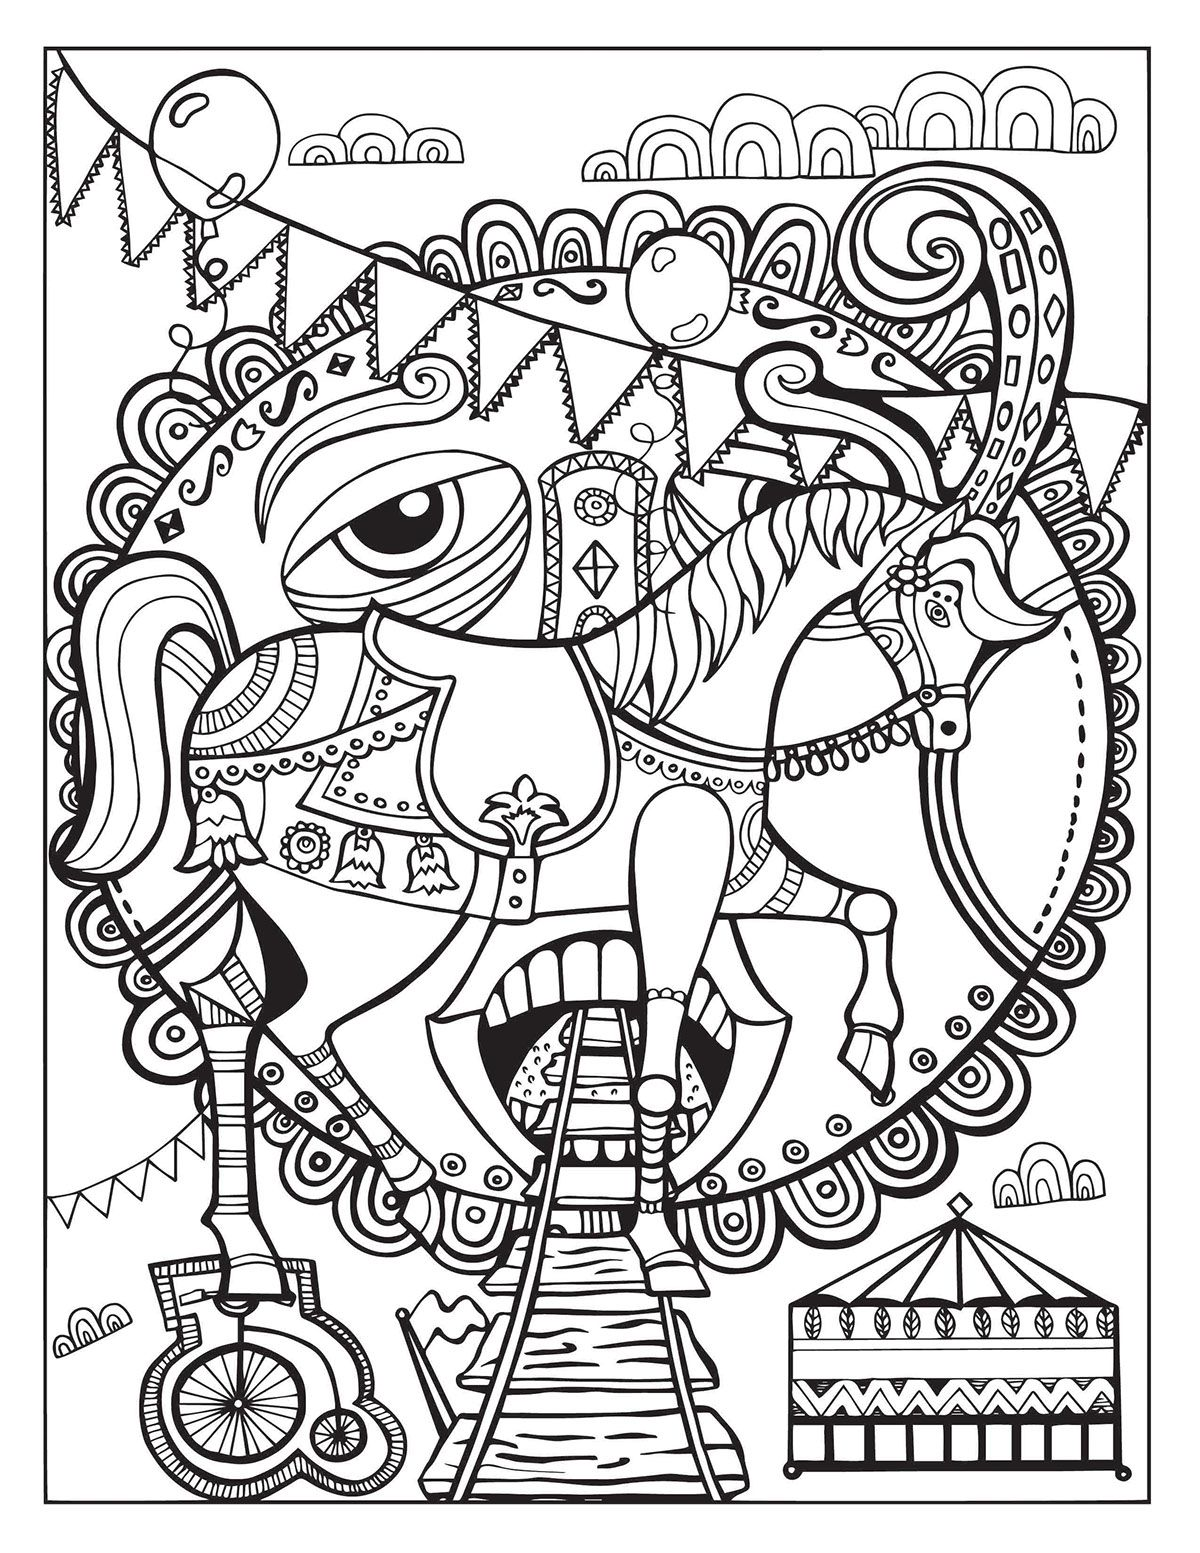 A Day At The Circus Coloring Page On Behance Horse Coloring Pages Cute Coloring Pages Coloring Pages